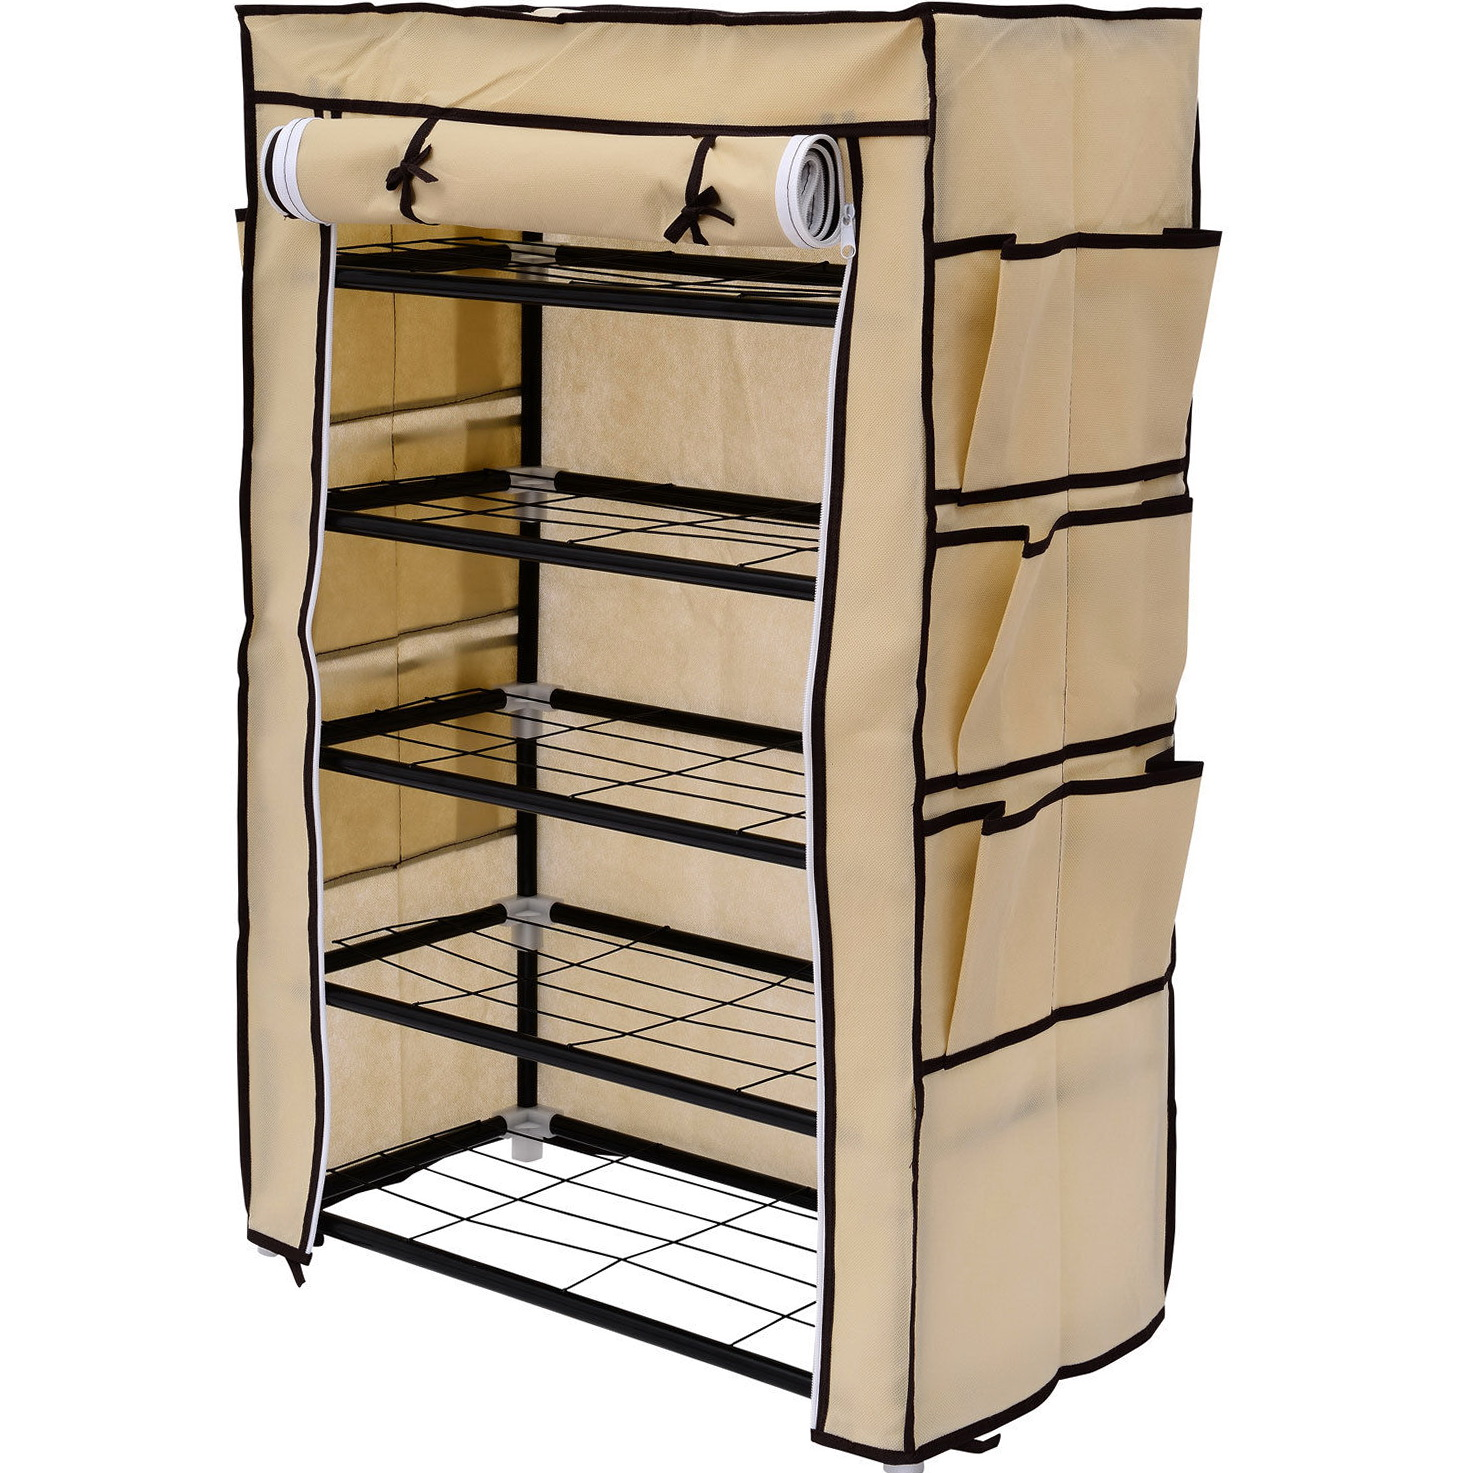 Portable Closet Storage Units Home Design Ideas